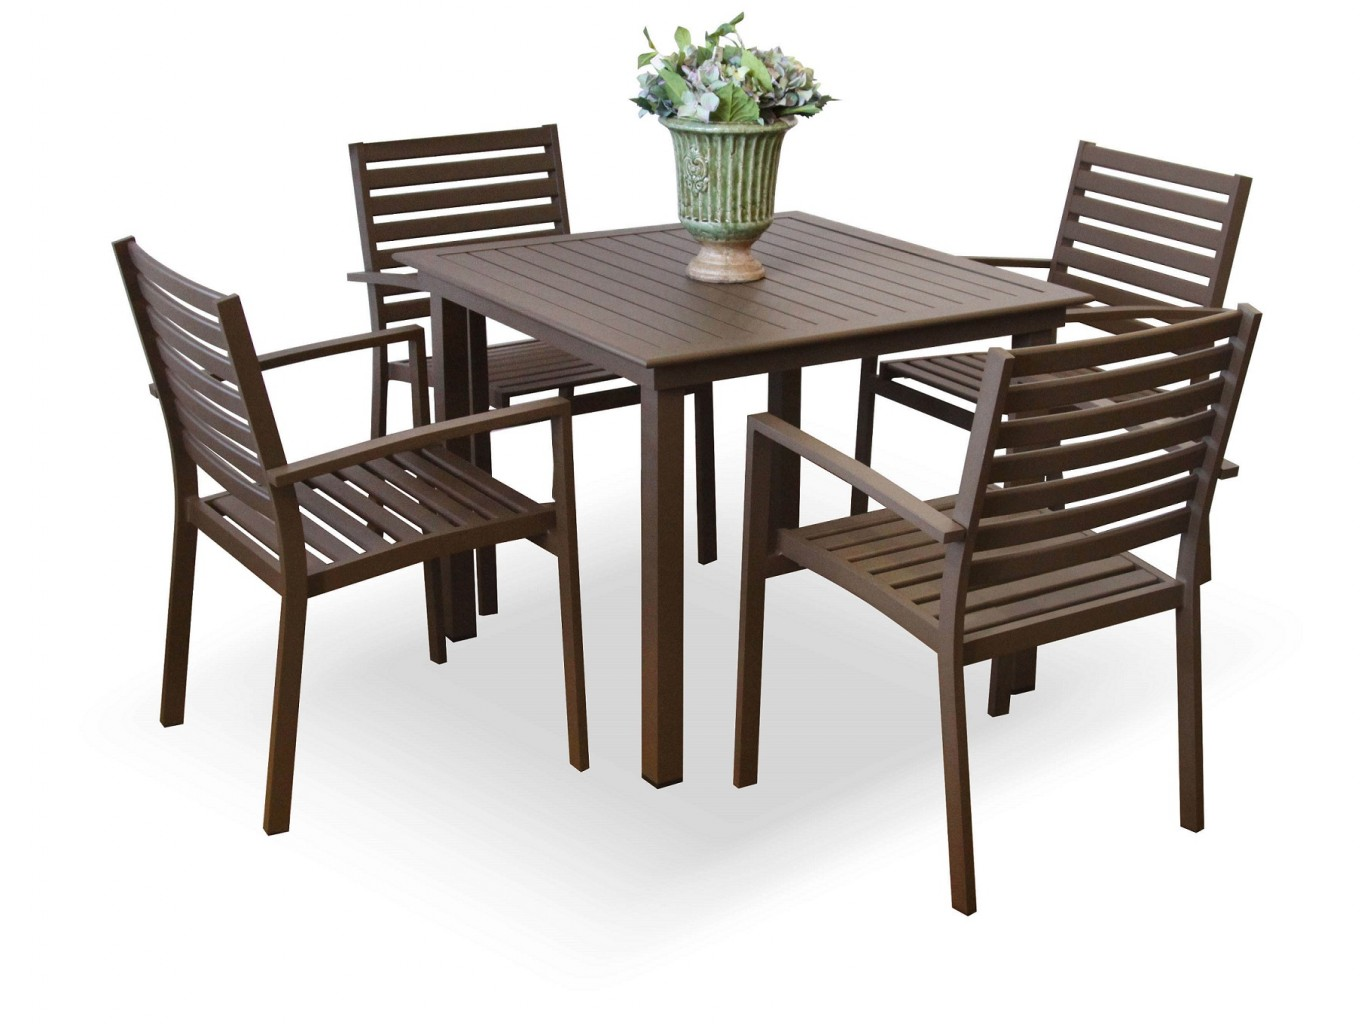 Quality furniture - dining suites in Windhoek Namibia - The Patio